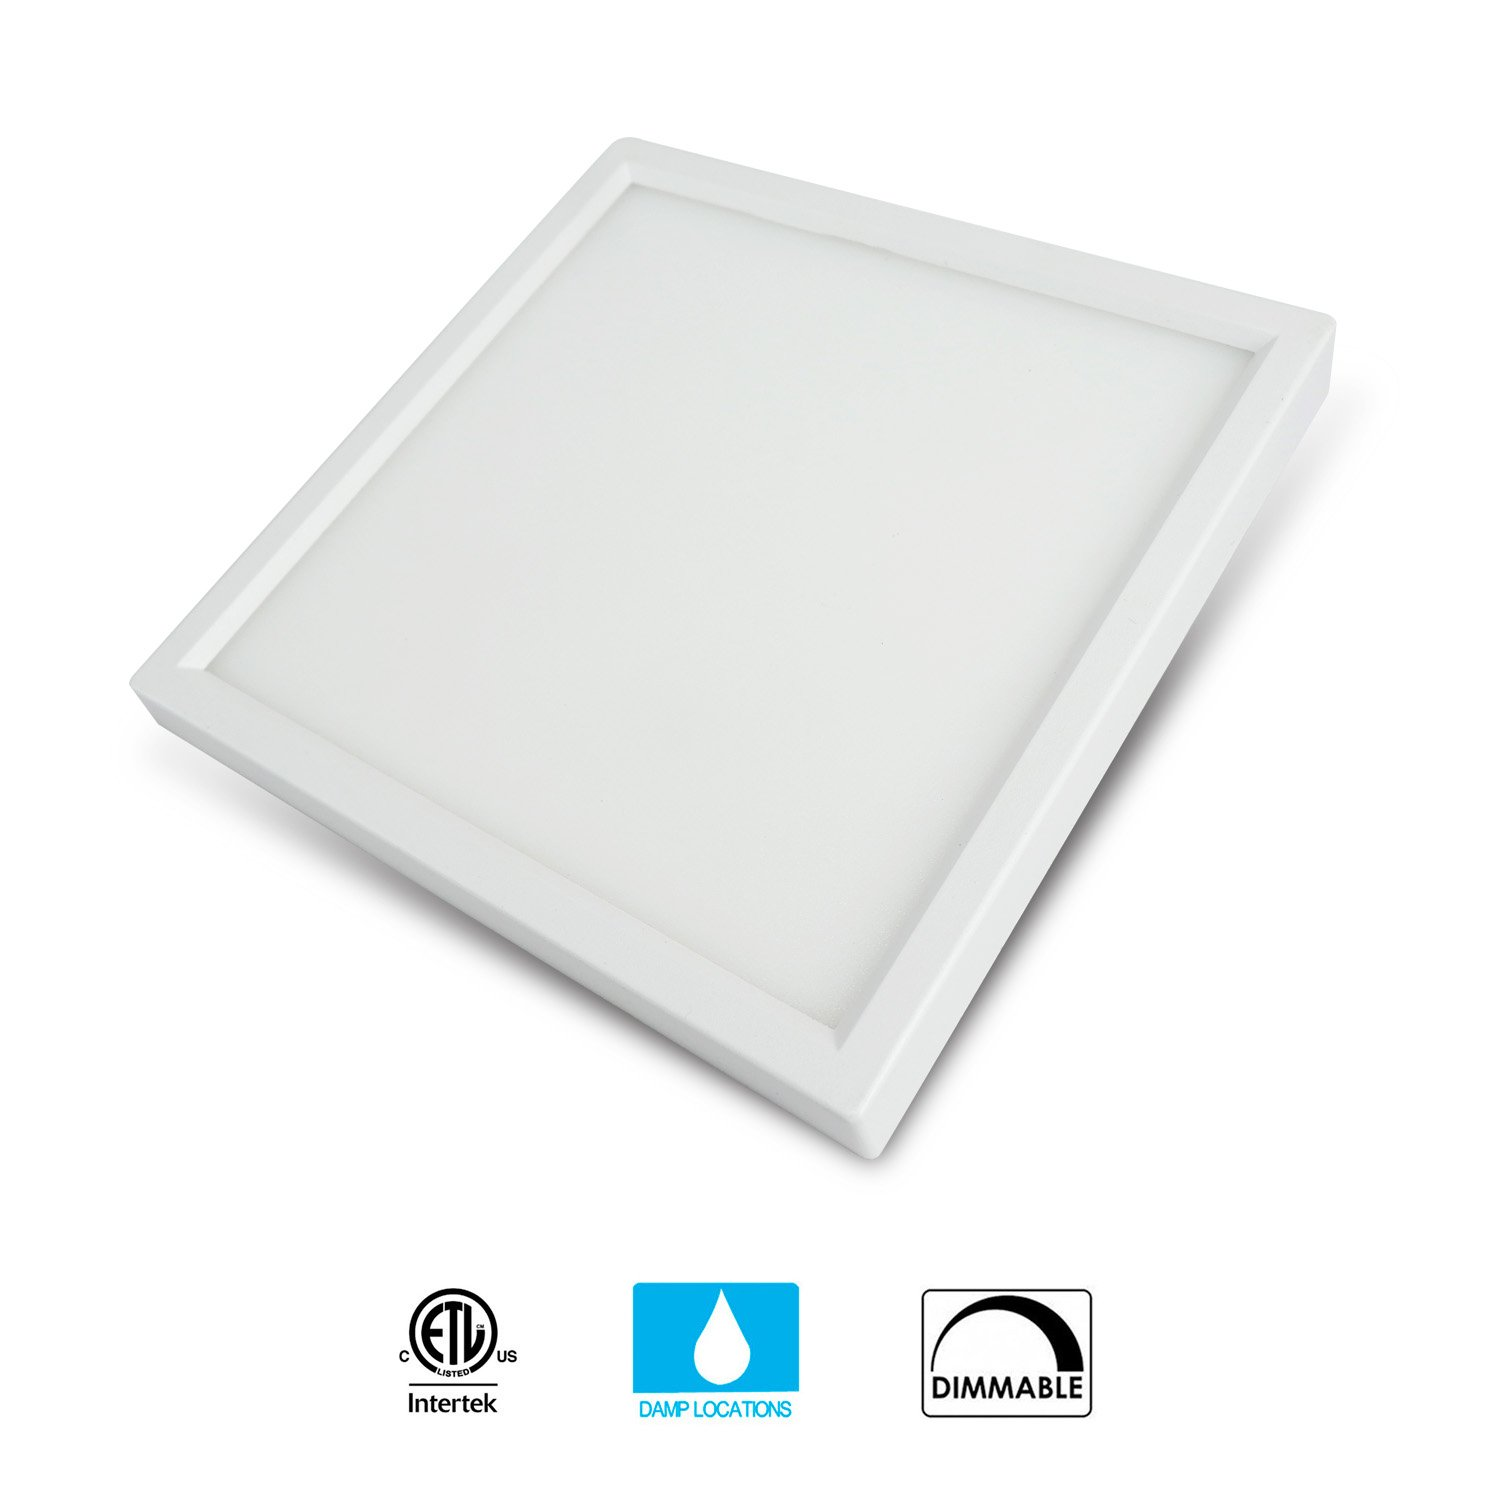 JULLISON 7 inch LED Slim Surface Mount Ceiling Light Fixture, 120V, 15W, 900LM, 3000K Warm White, CRI80, Driverless, ETL Certified, Damp Location, White - Square, 1 Pack